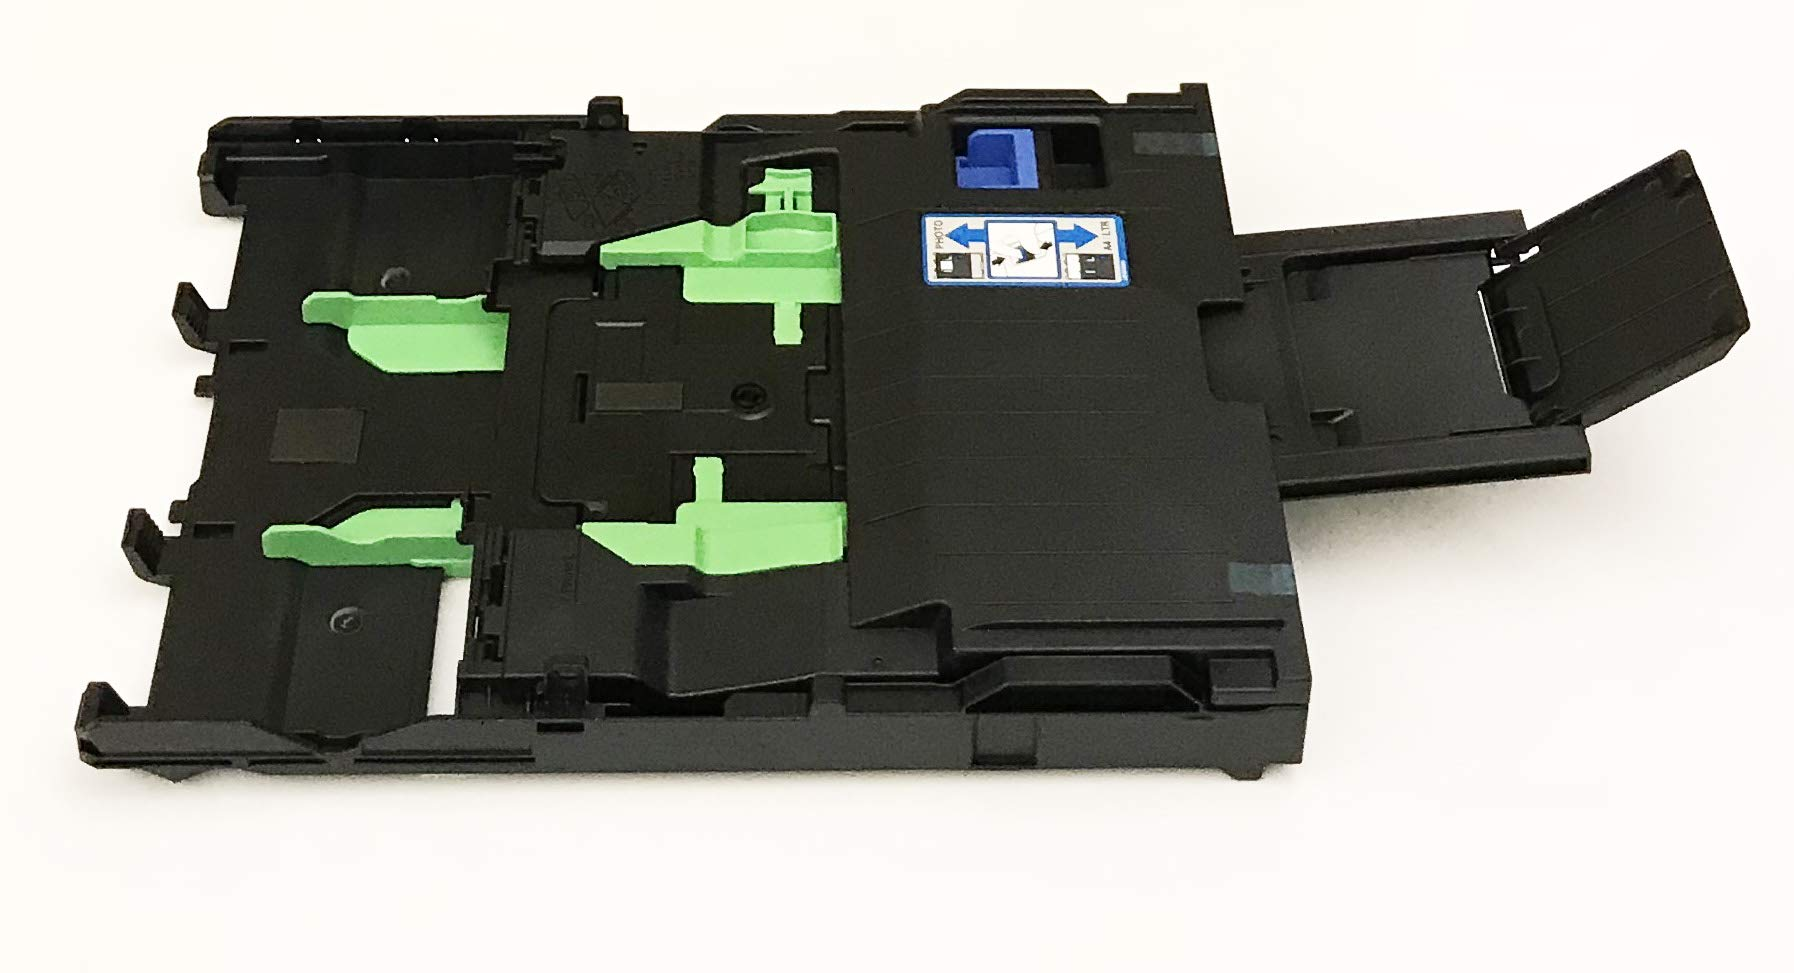 OEM Brother 100 Page Paper Cassette Tray Shipped with MFC-J985DW, MFCJ985DW, DCP-J772DW, DCPJ772DW by Brother (Image #1)